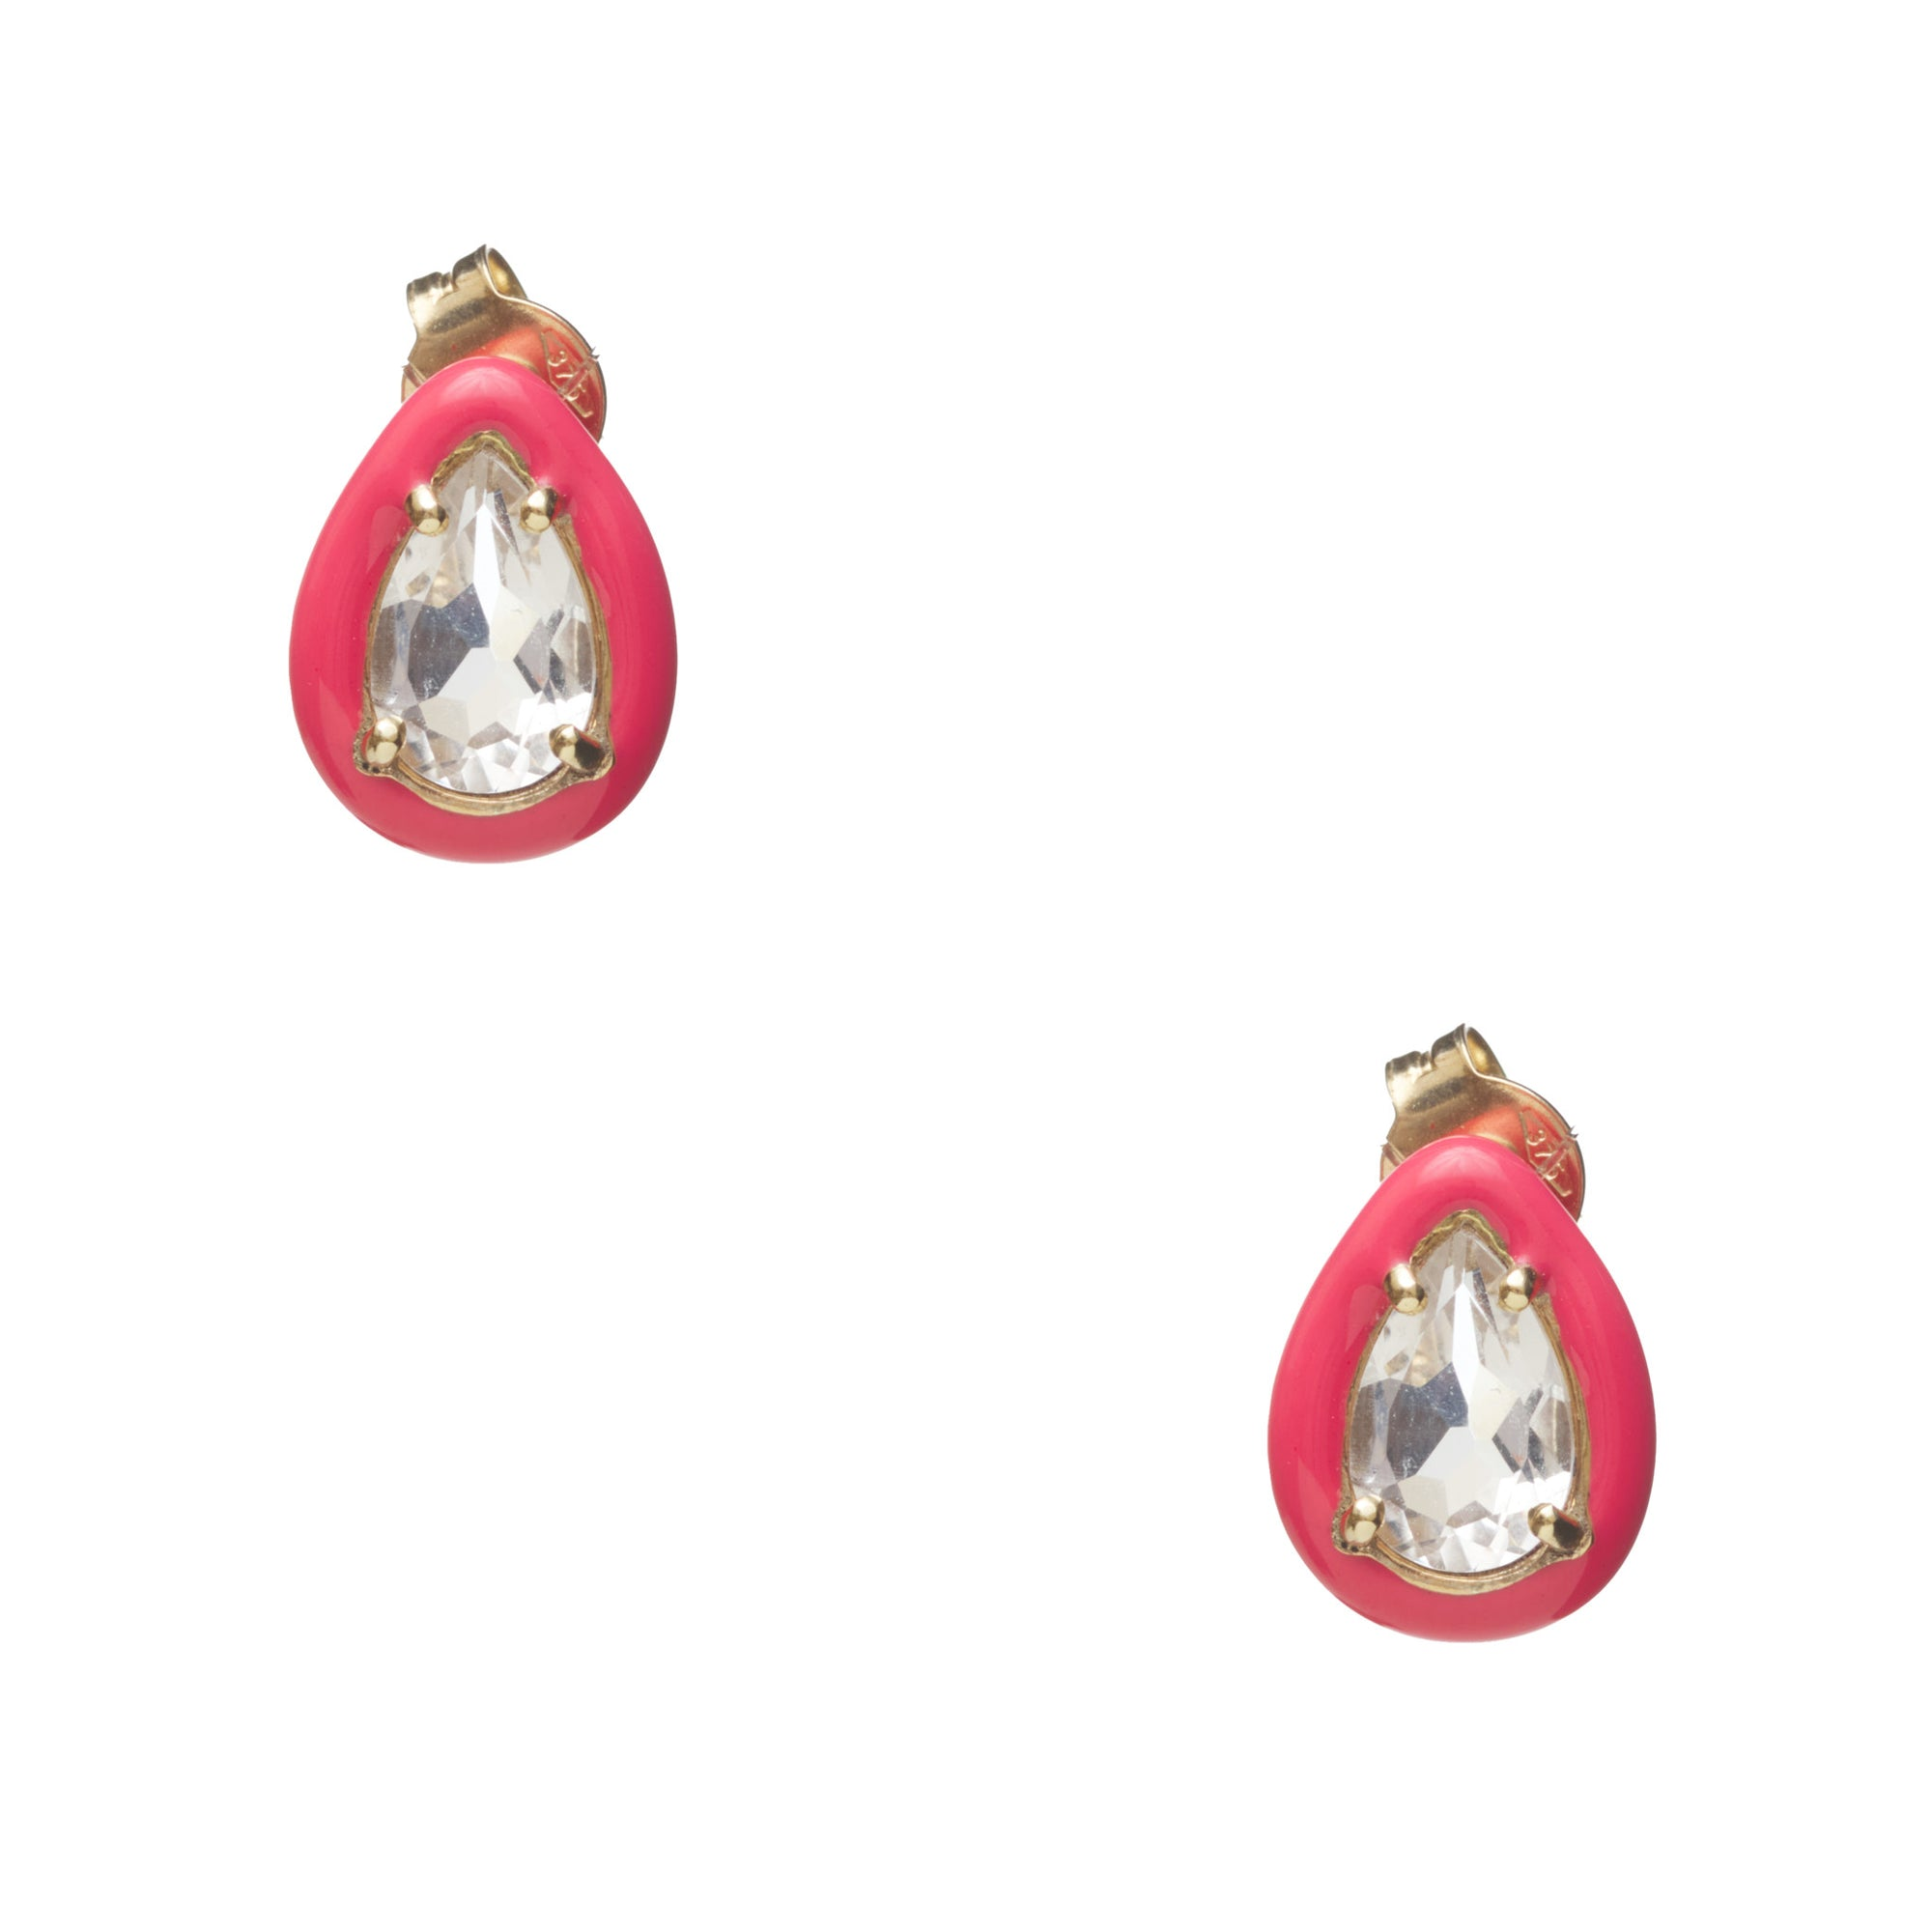 Bea Bongiasca GUMDROP STUD EARRINGS